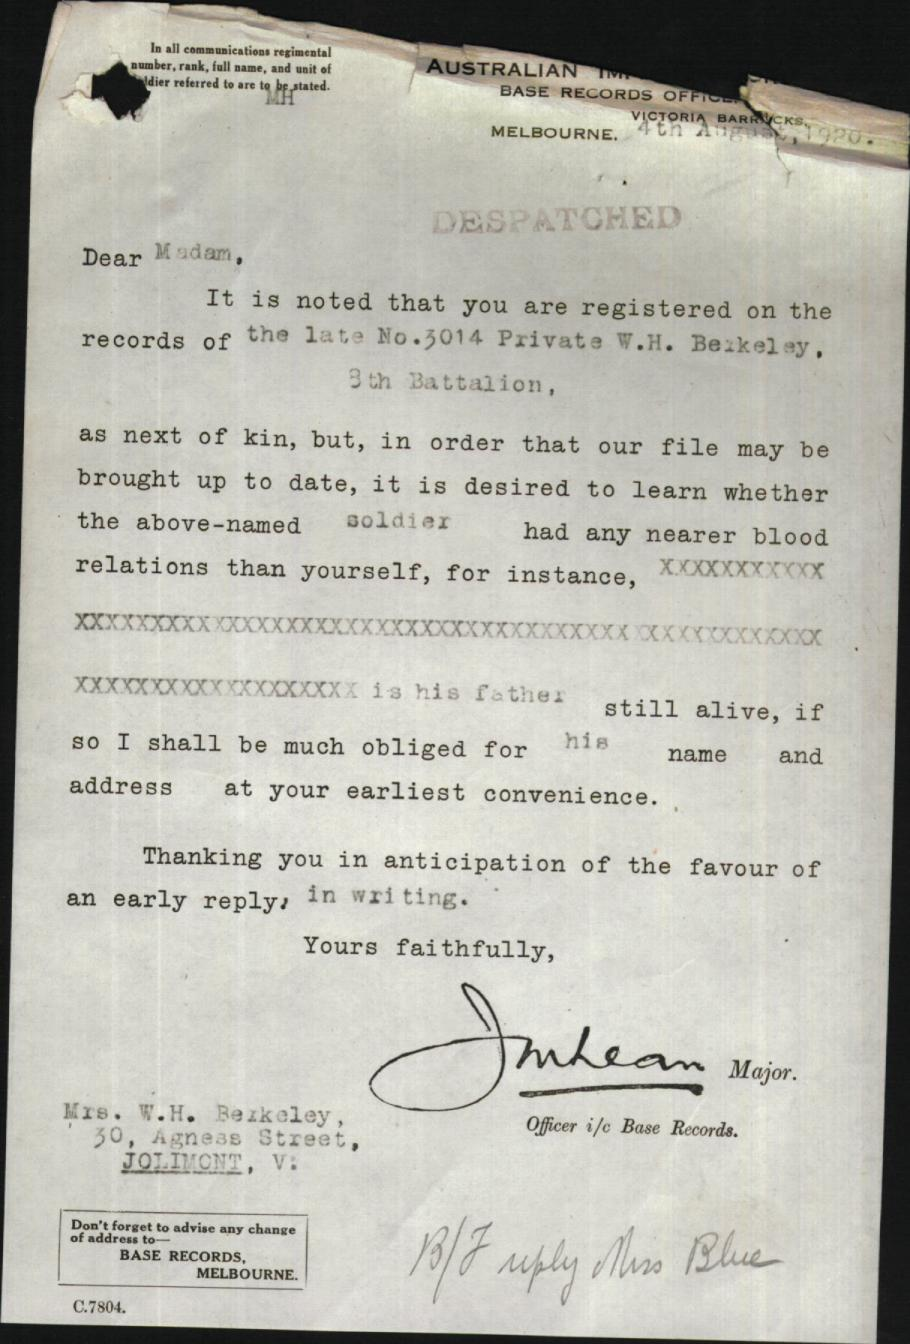 Letter to Mother asking if the deceased had a nearer blood relation